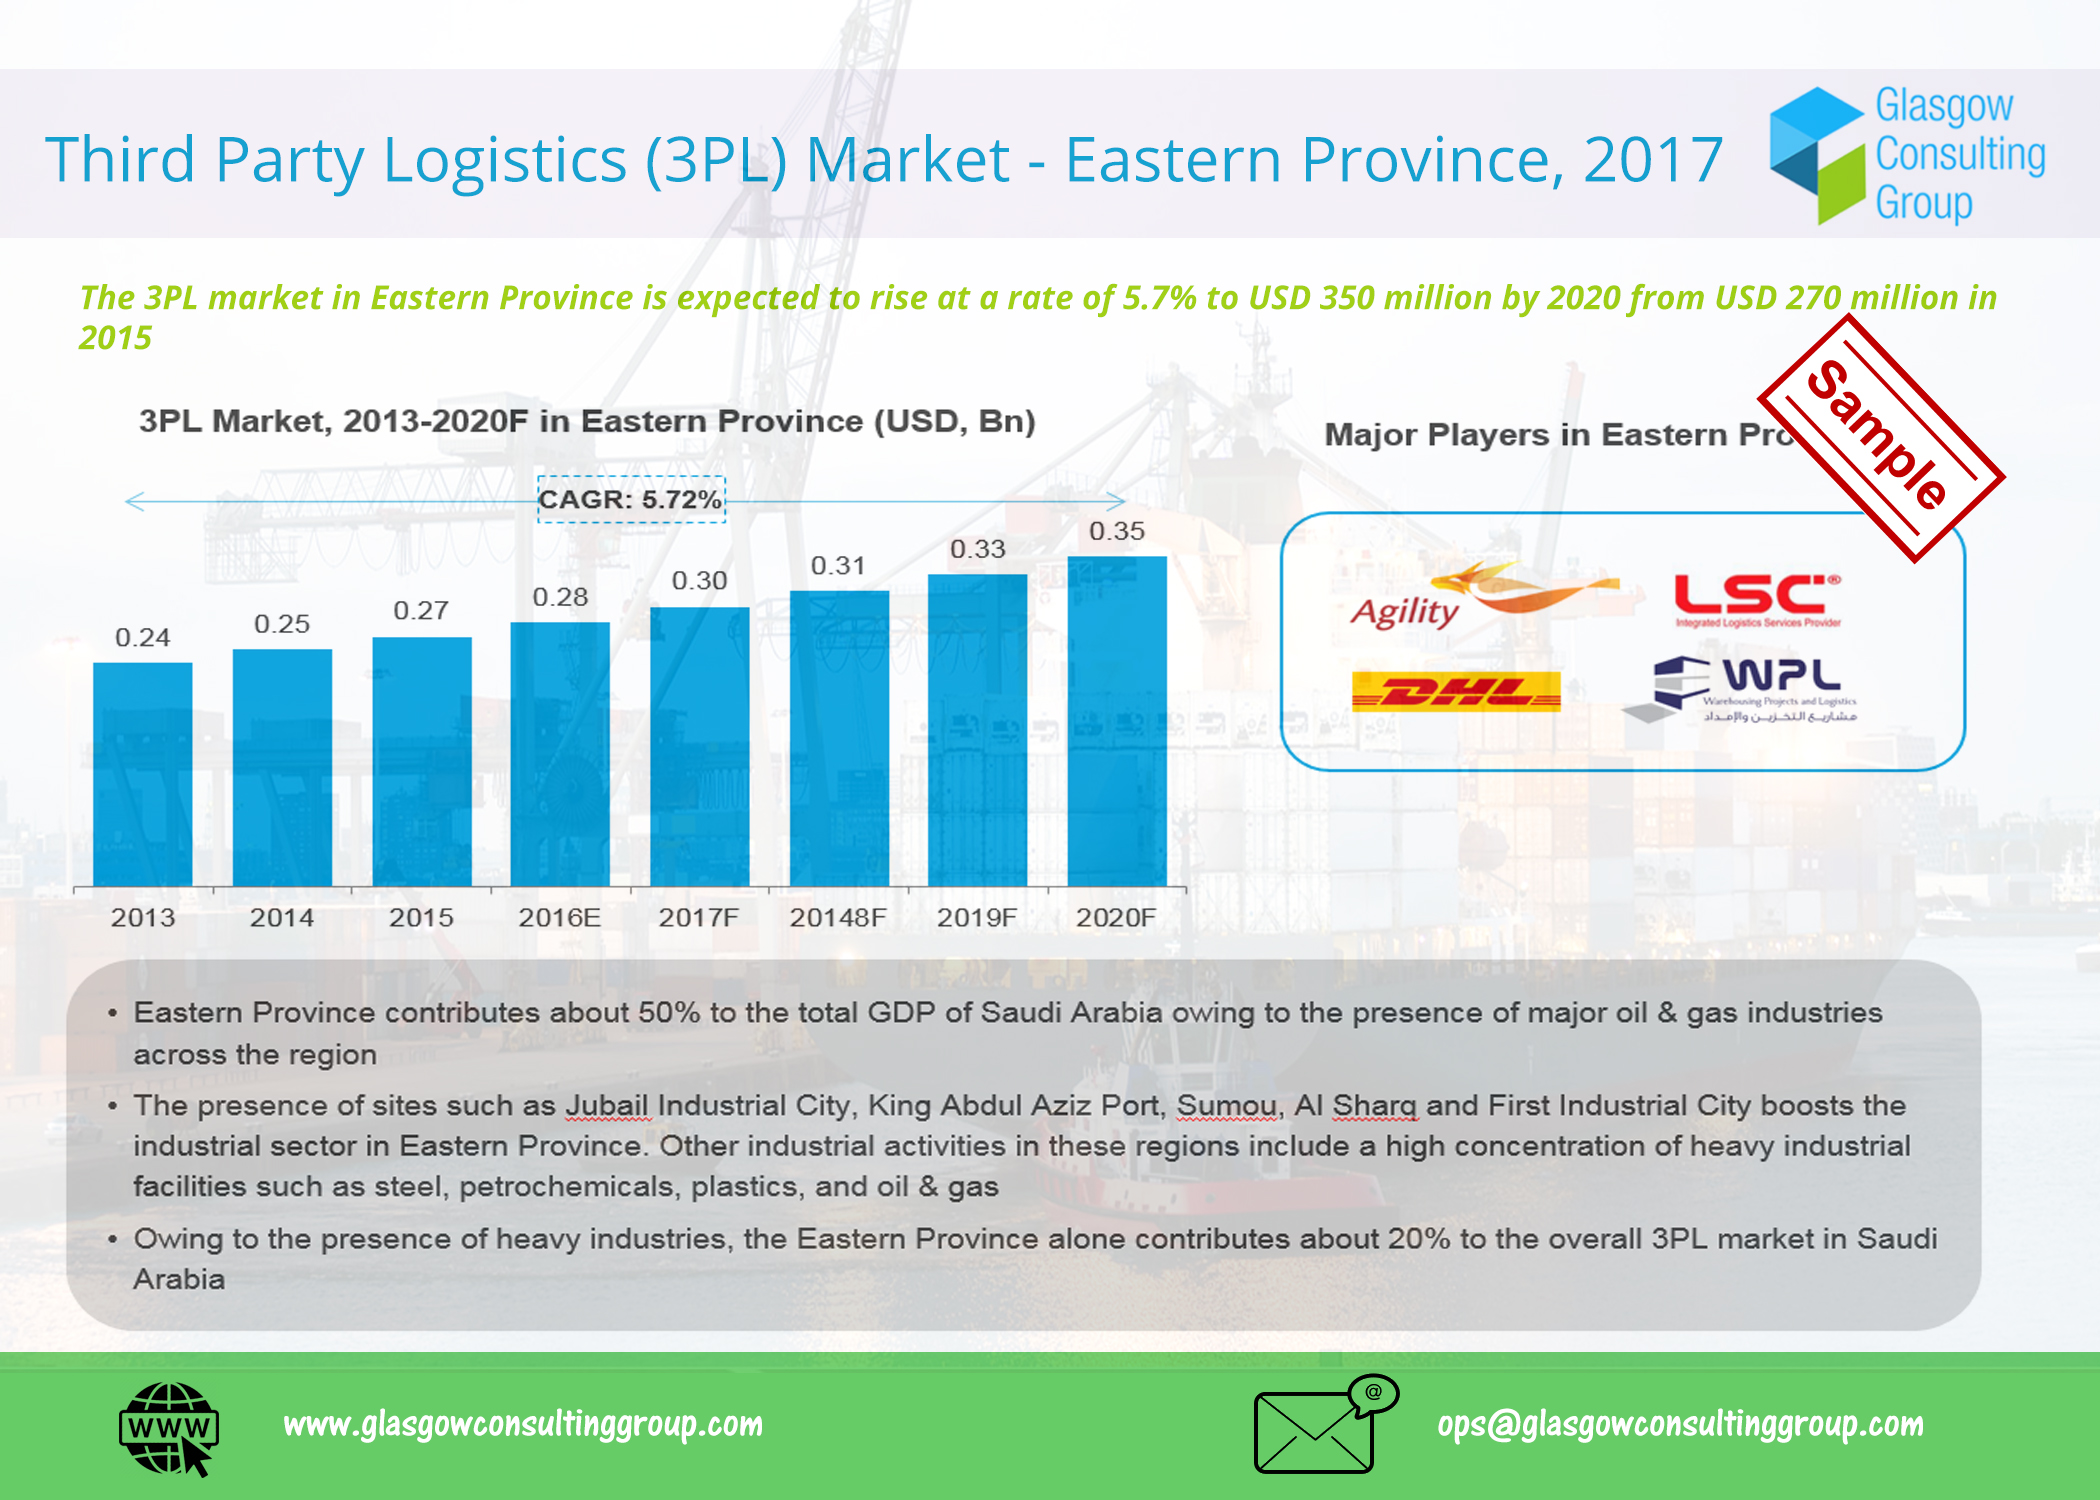 2 Third Party Logistics (3PL) Market - Eastern Province, 2017